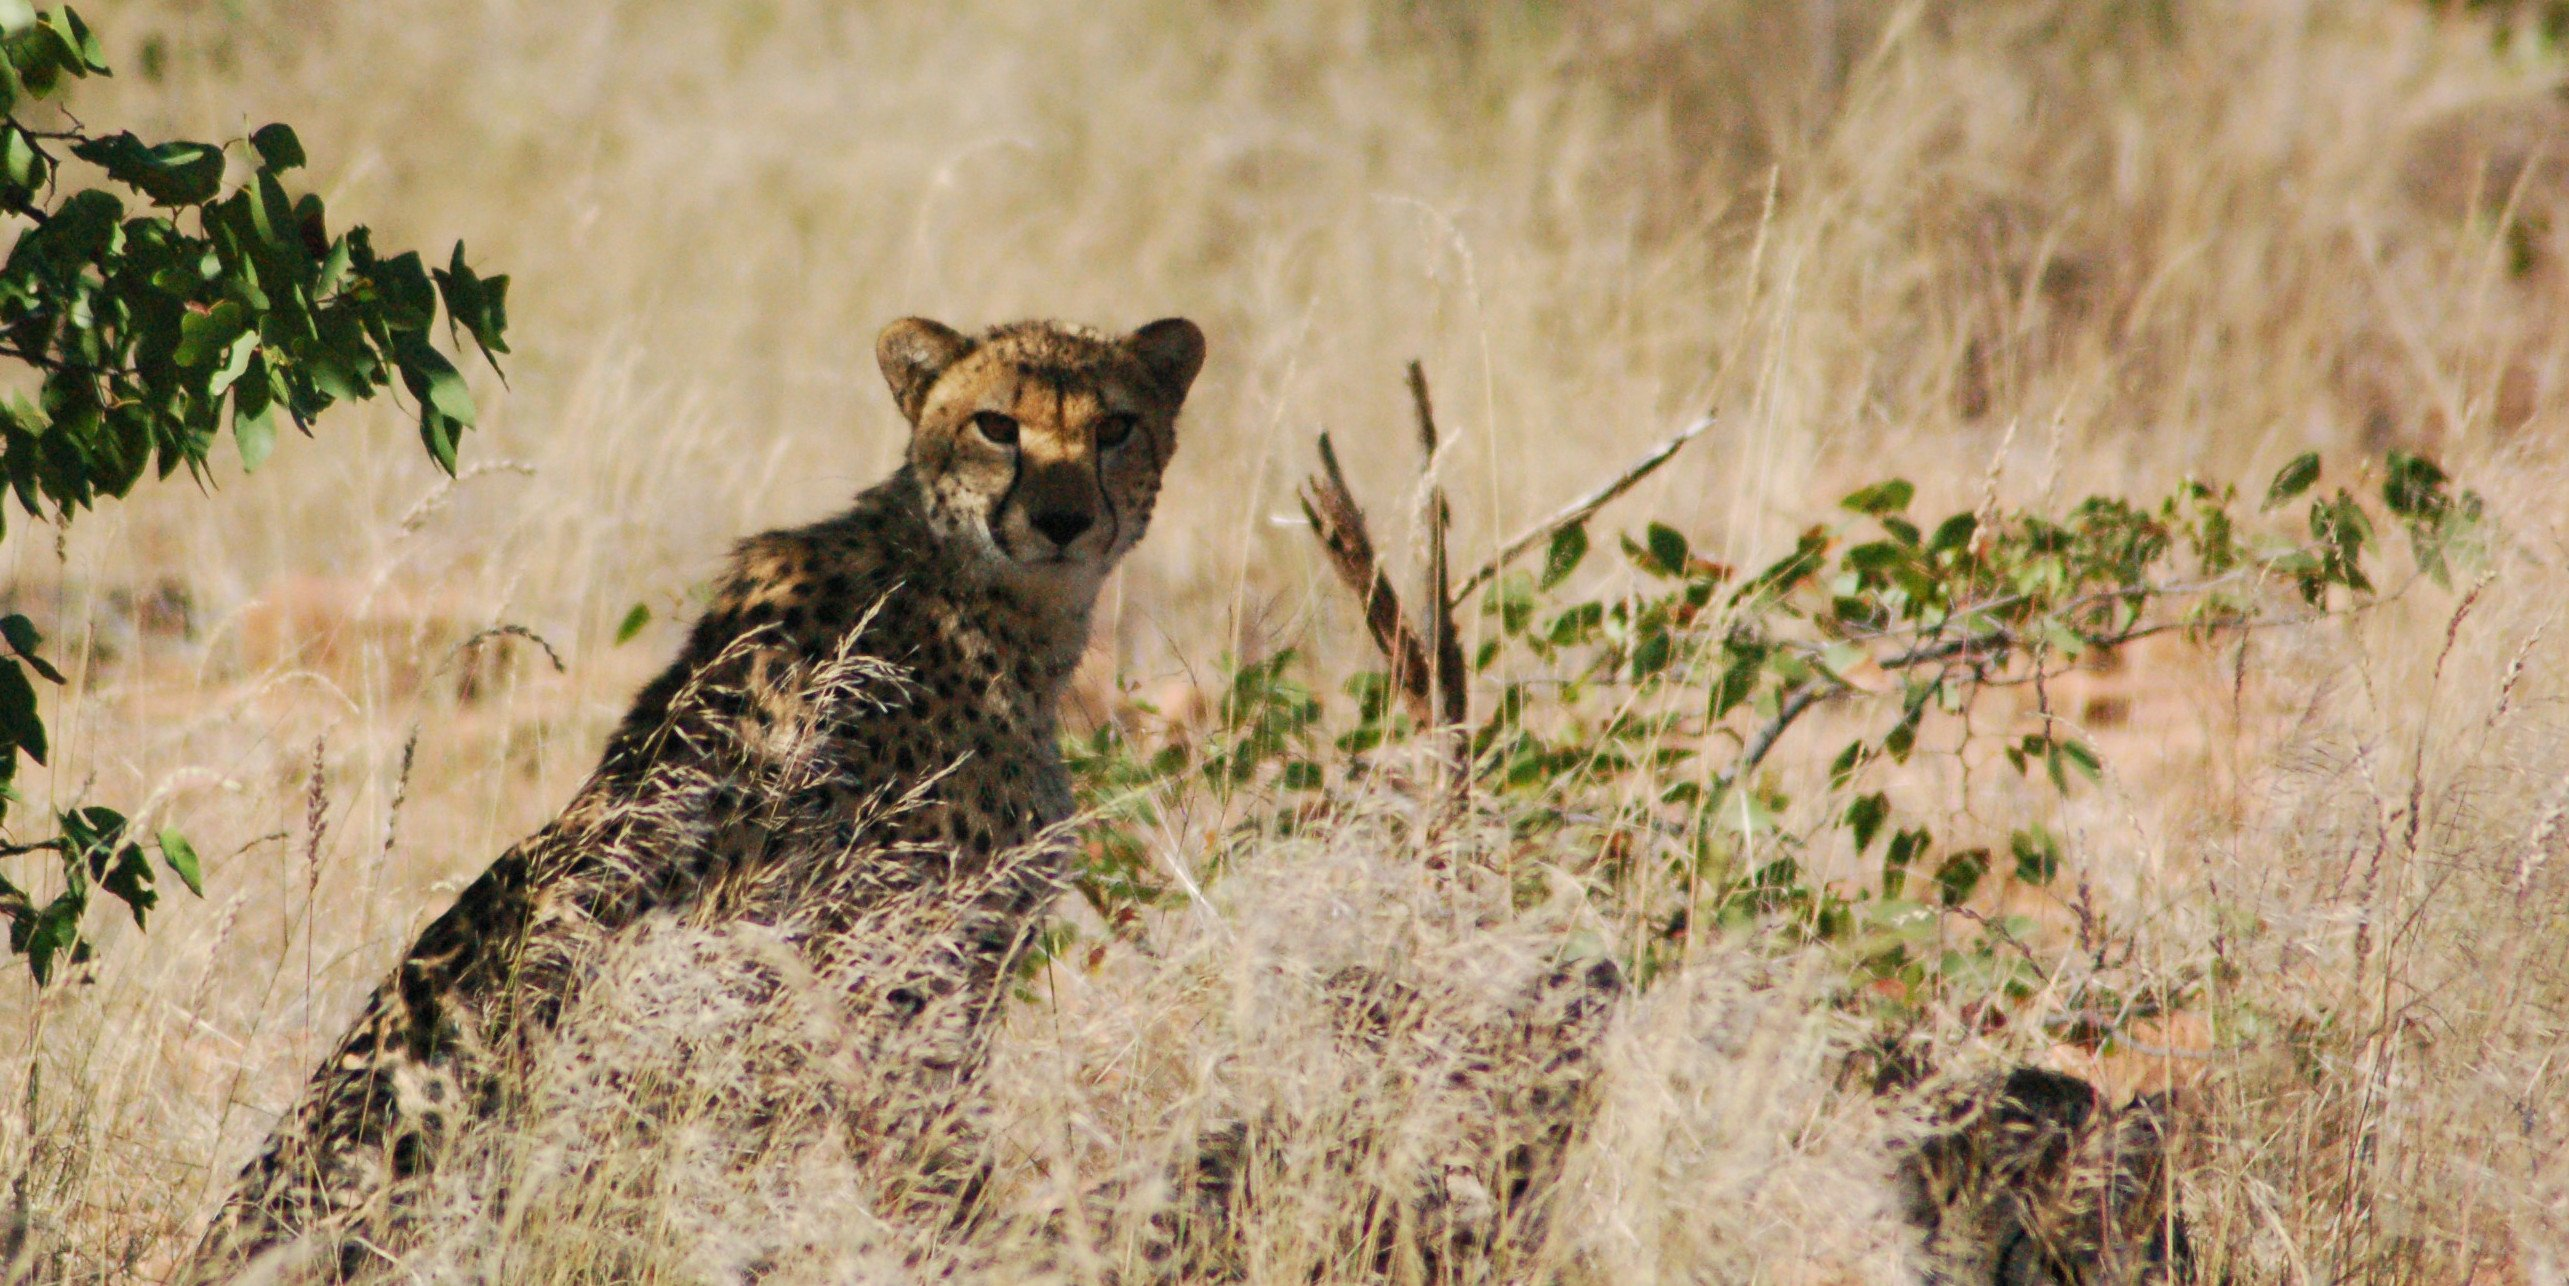 A cheetah spends some time in the cool shade. Cheetah conservation volunteers will record the cheetah's behaviour, as part of their conservation volunteering program.